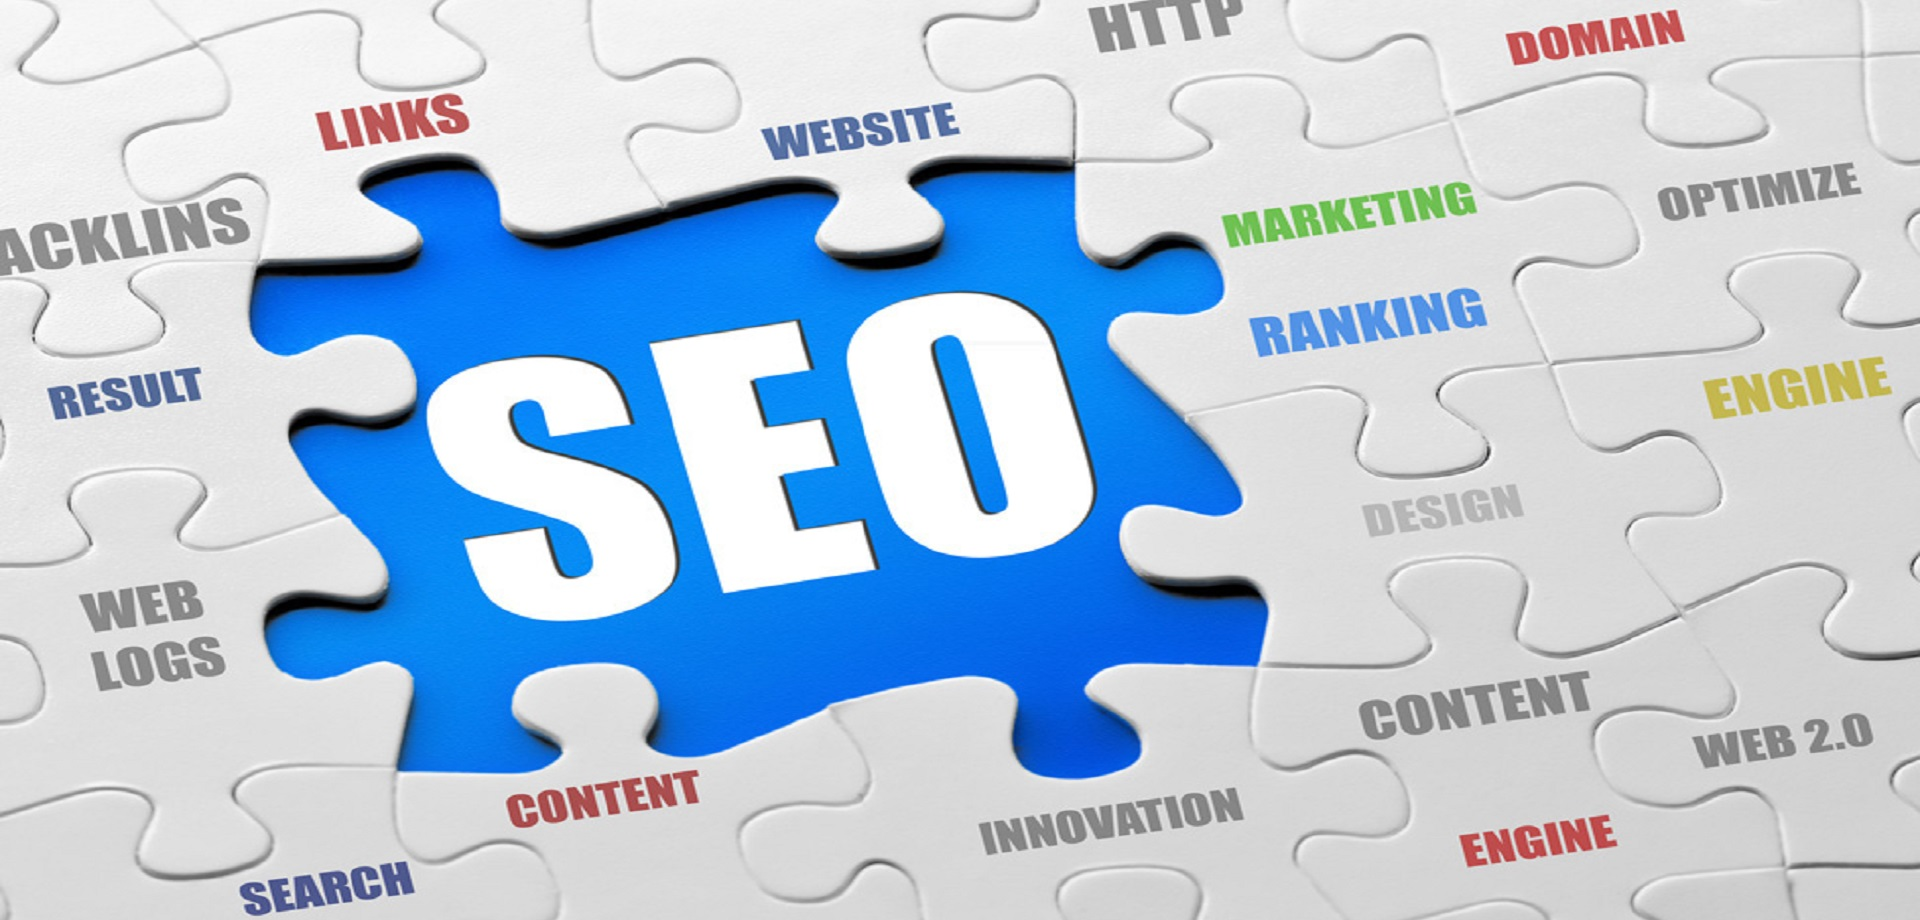 A Guide to Create a Site Structure for Optimizing SEO